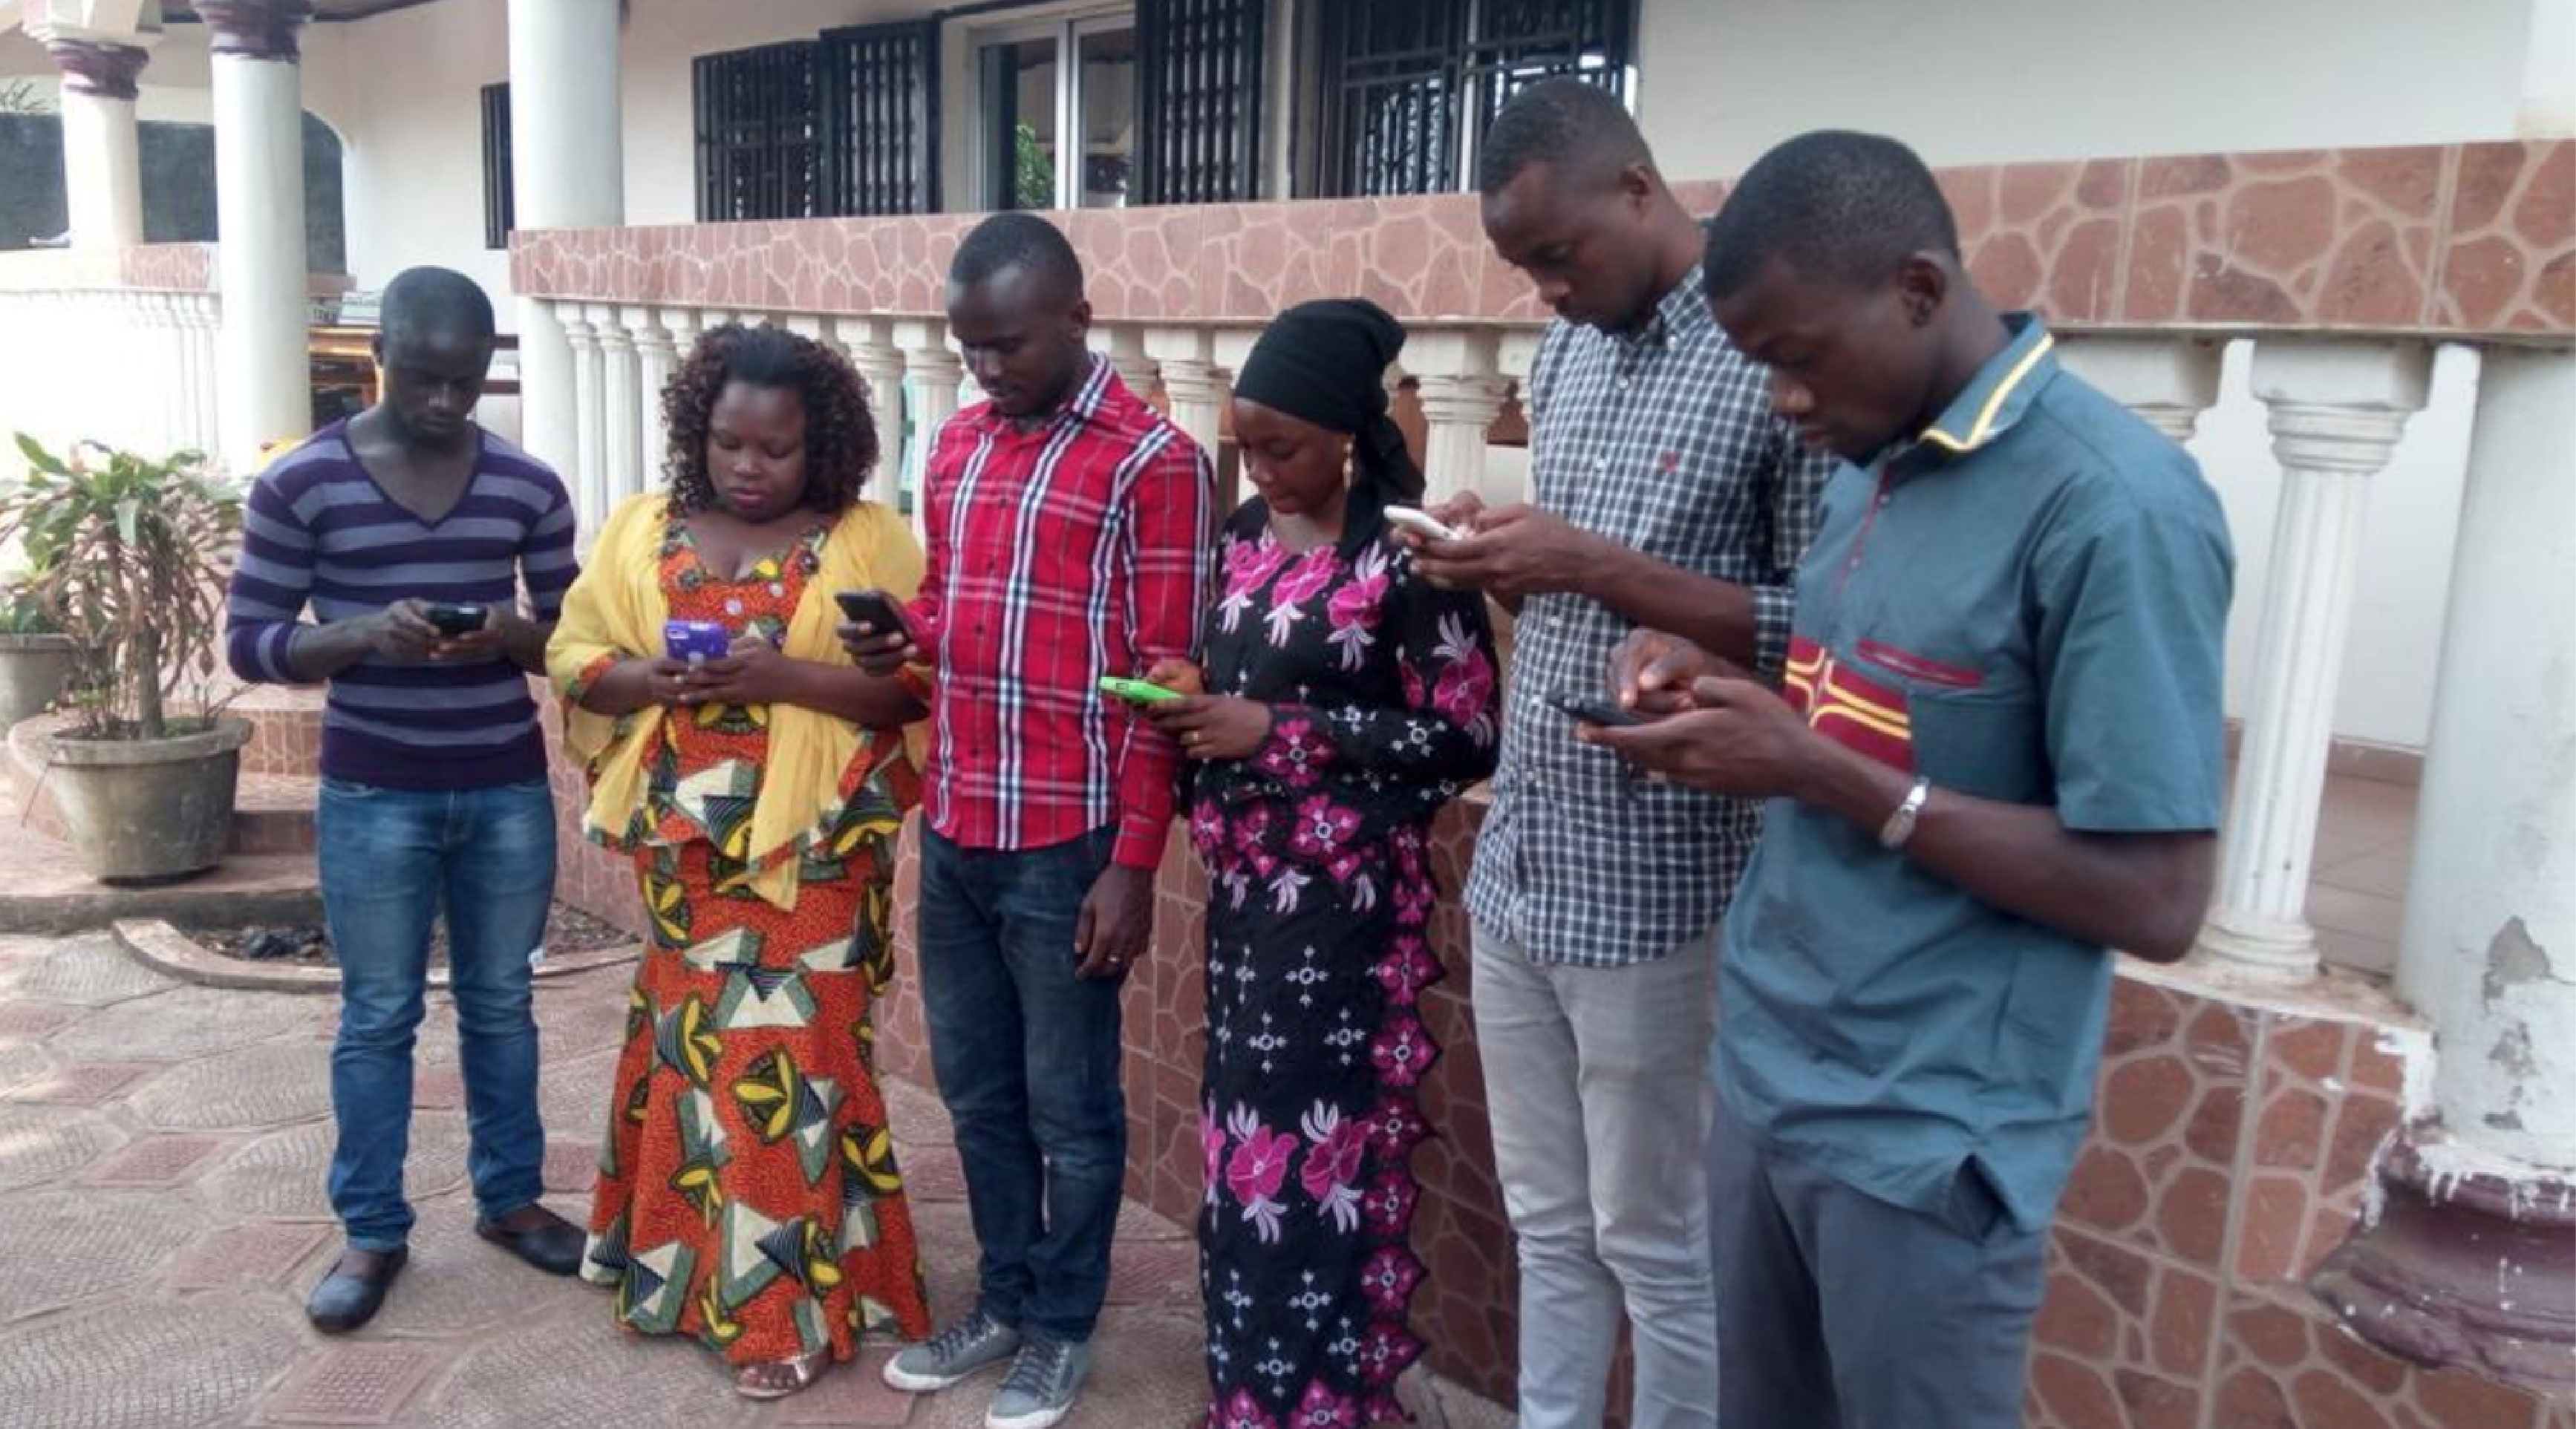 OSM in West Africa: The Mapping Continues